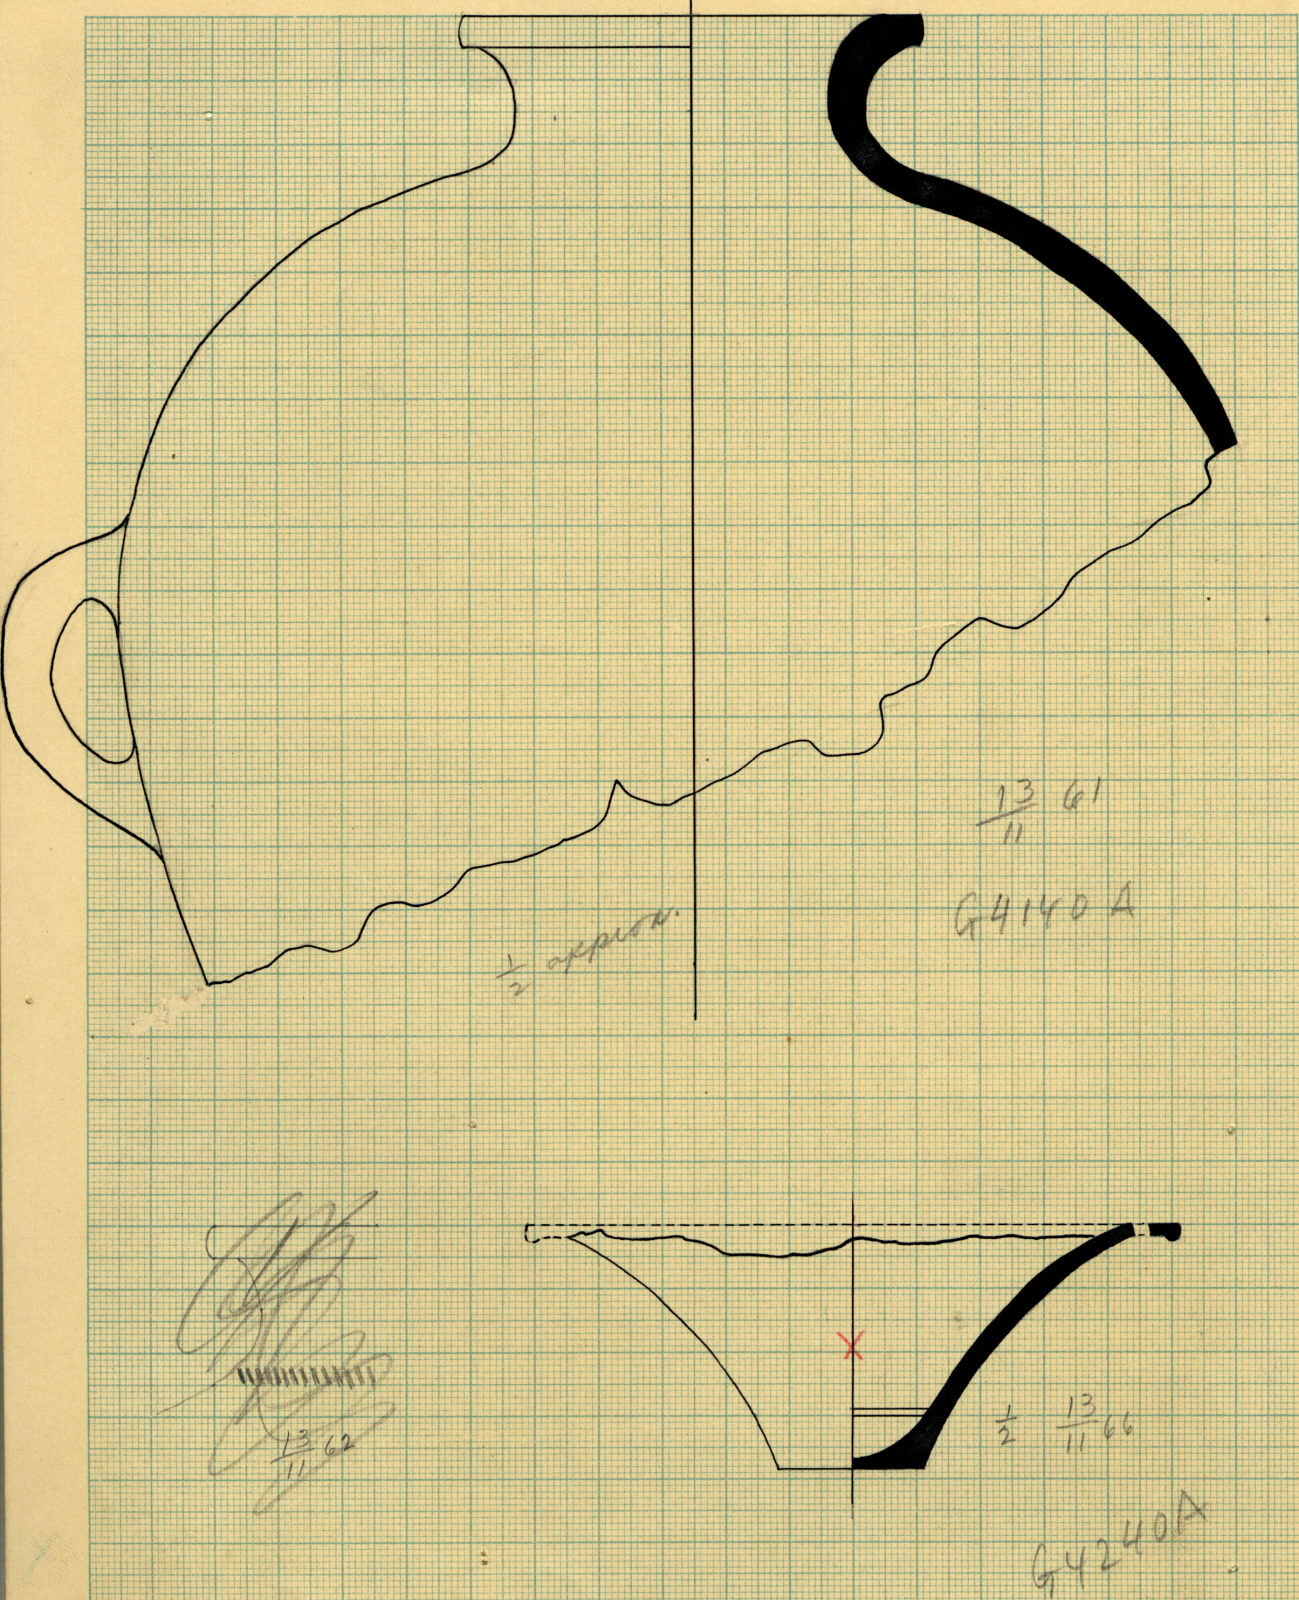 Drawings: Pottery from G 4140, Shaft A, and G 4240, Shaft A